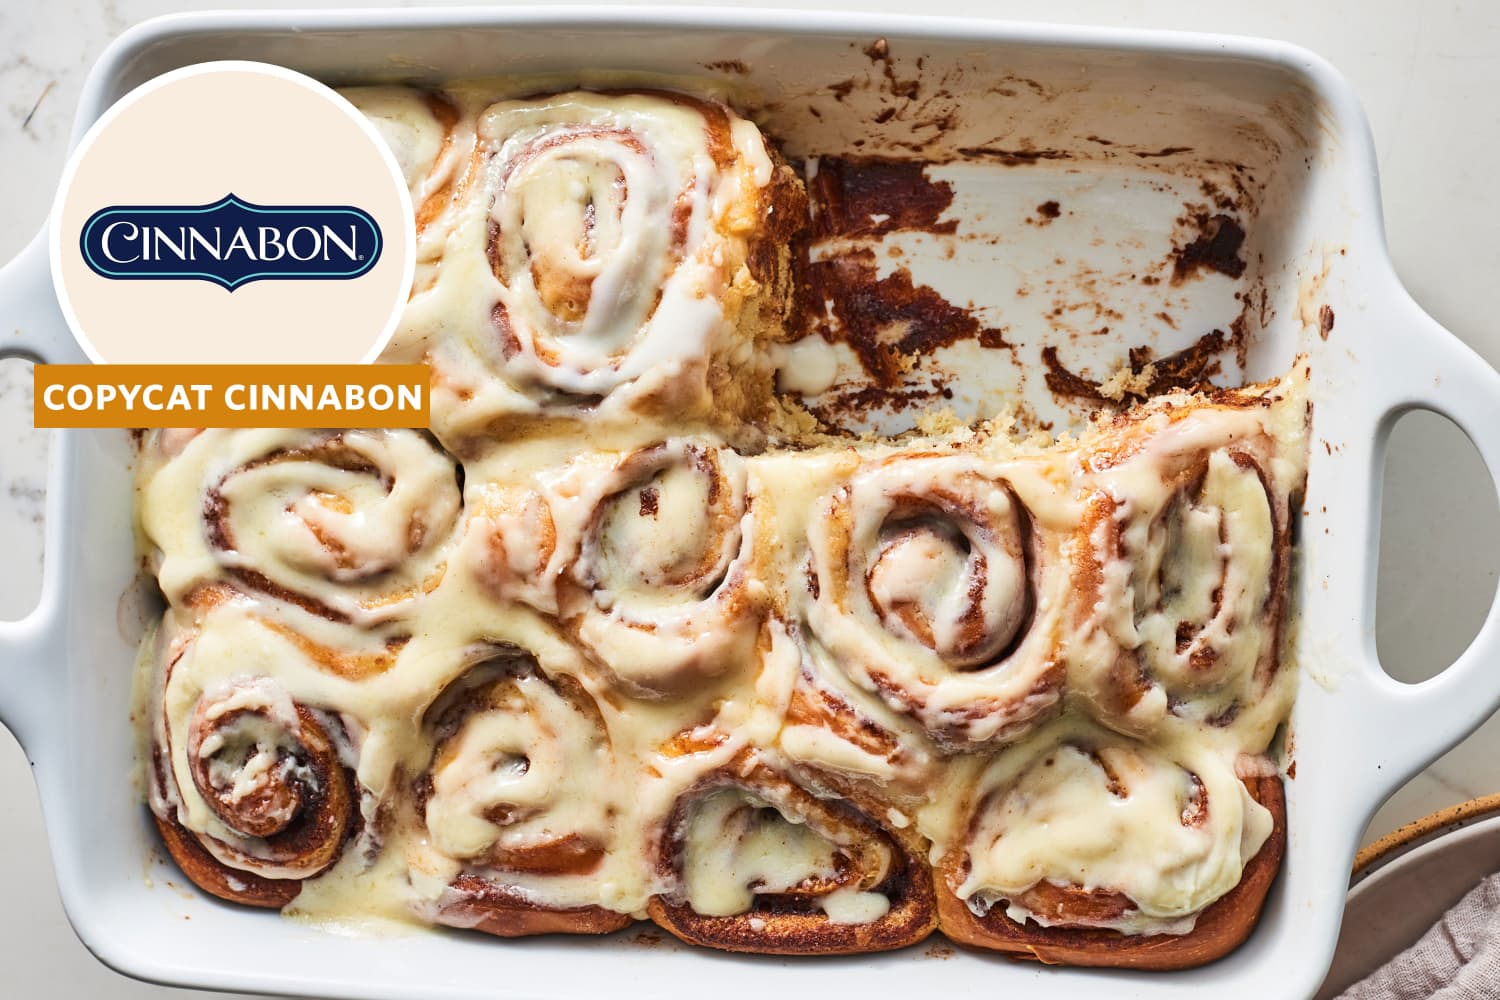 I Tried the Internet's Most Popular Copycat Recipe of Cinnabon Cinnamon Rolls